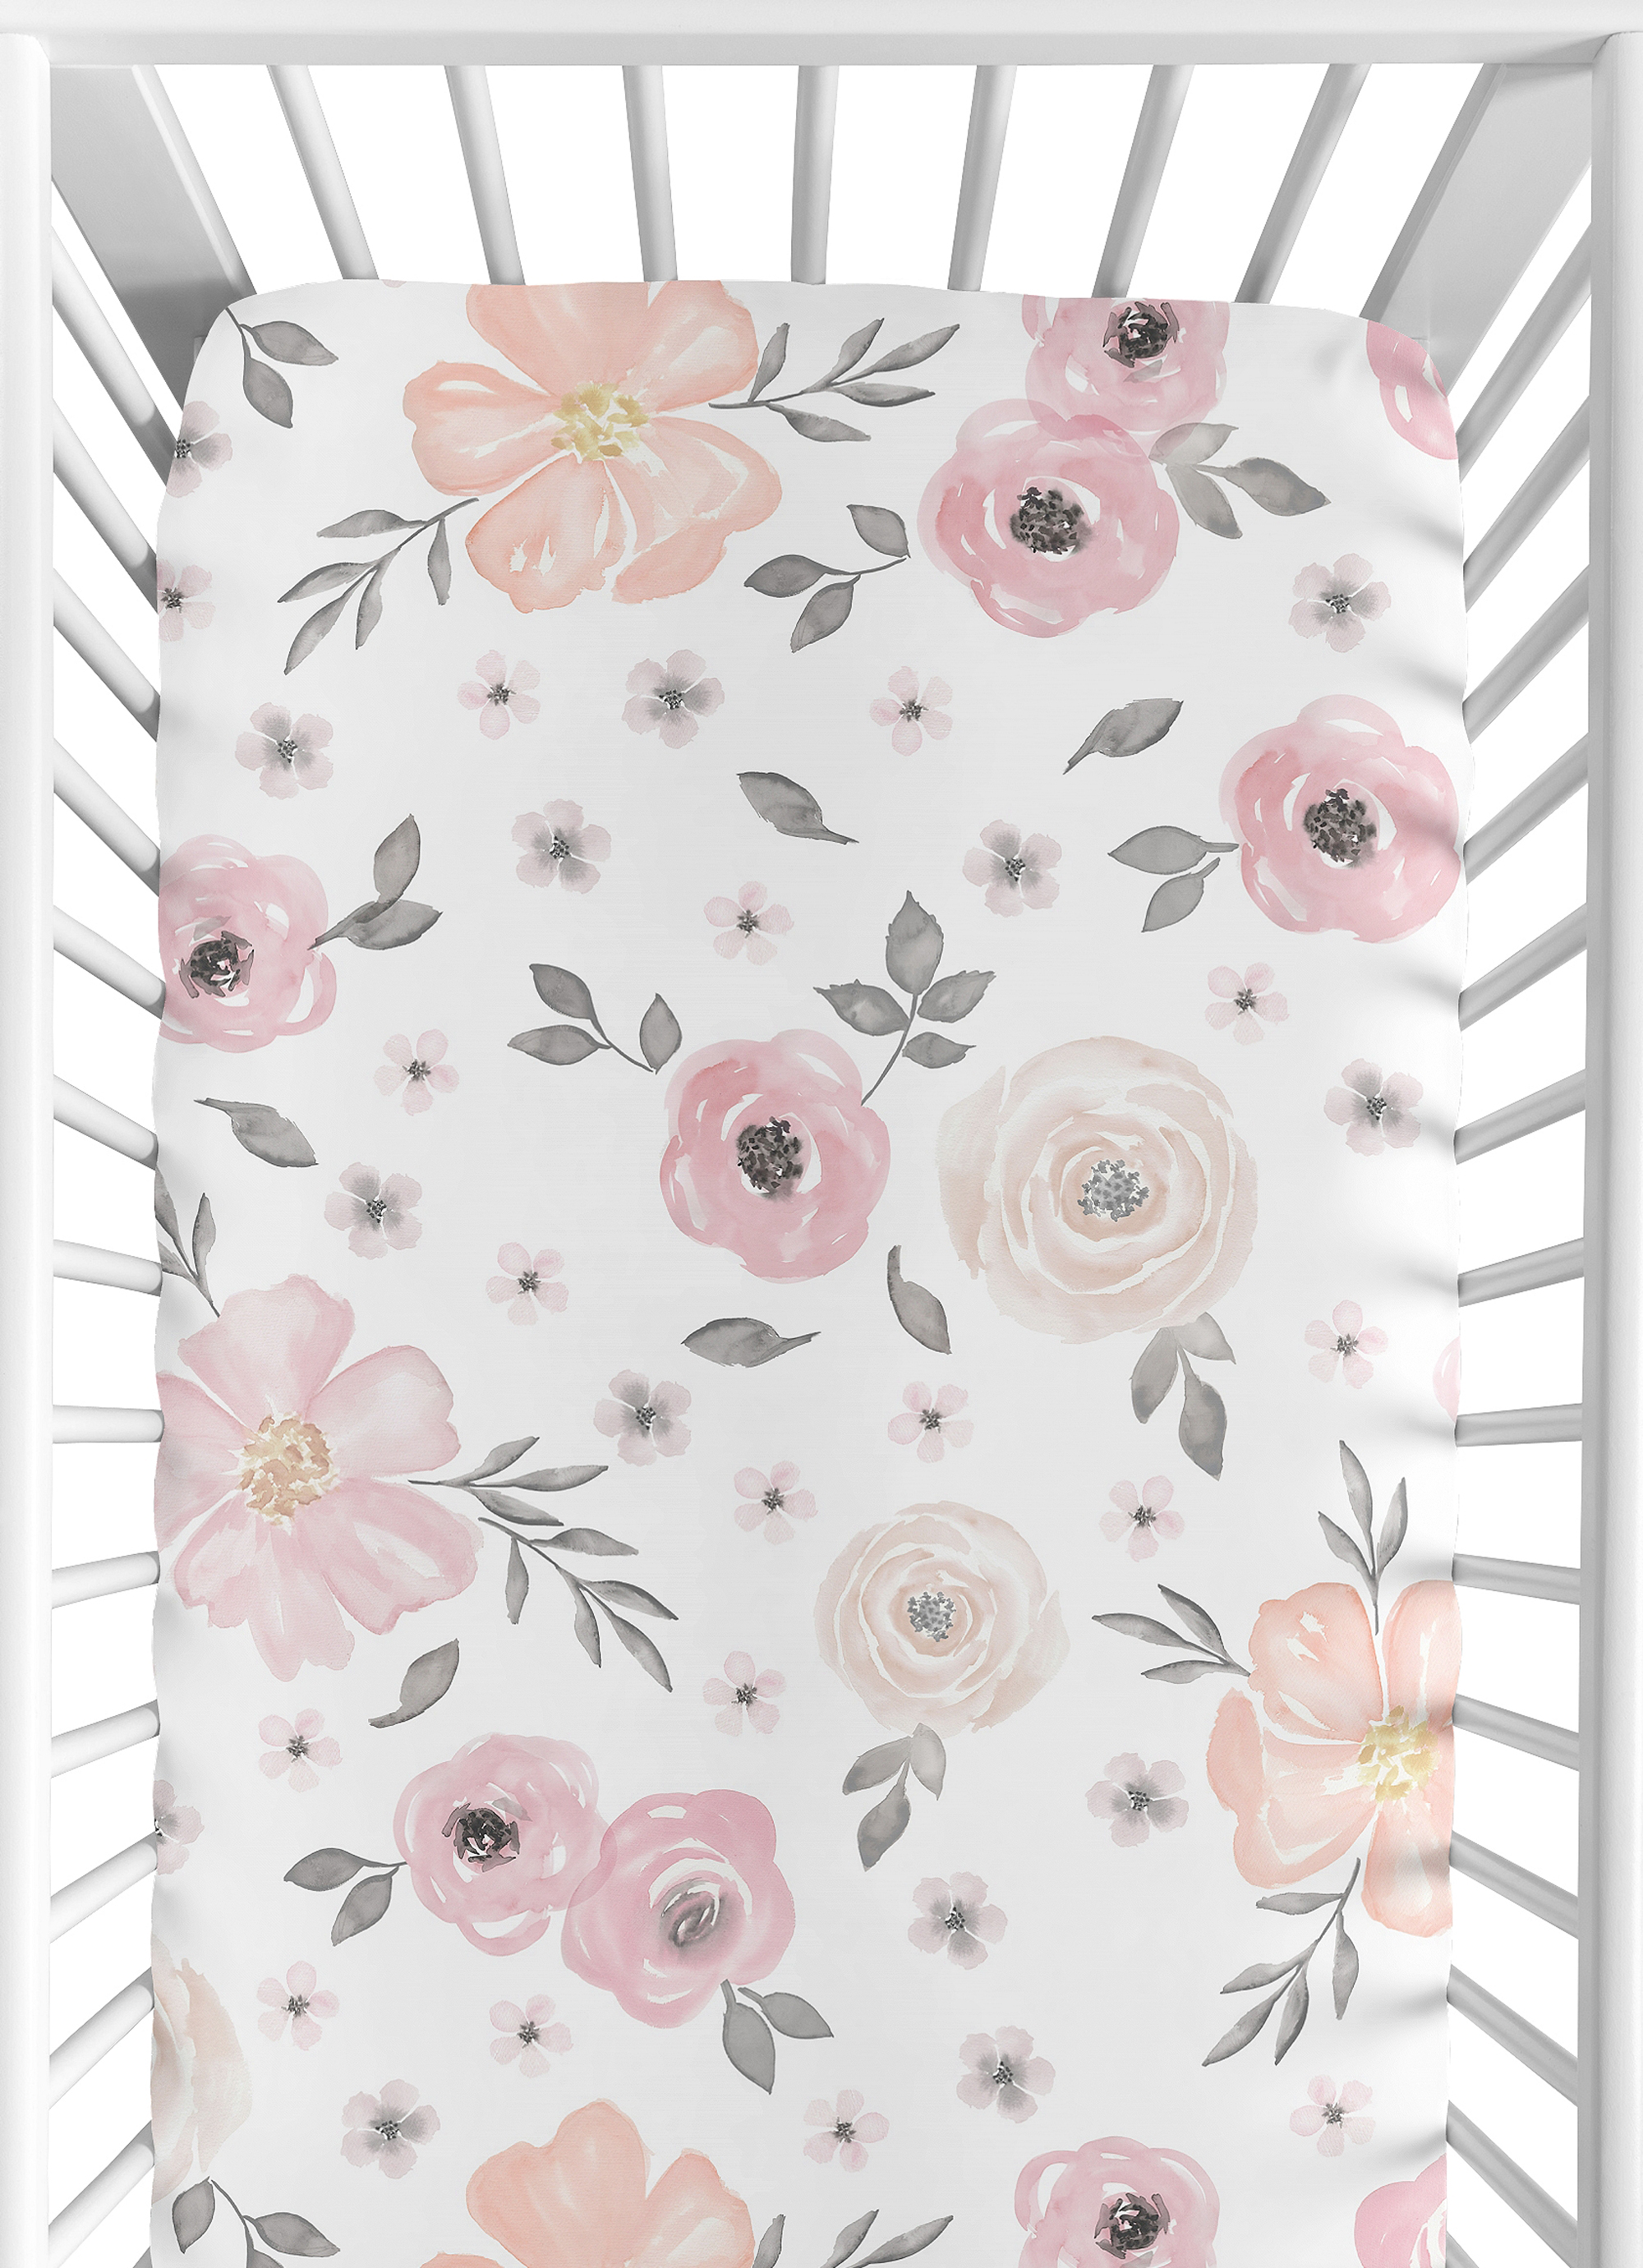 Sweet Jojo Baby Crib Toddler Fitted Sheet For Pink Watercolor Bedding Floral 846480054009 Ebay